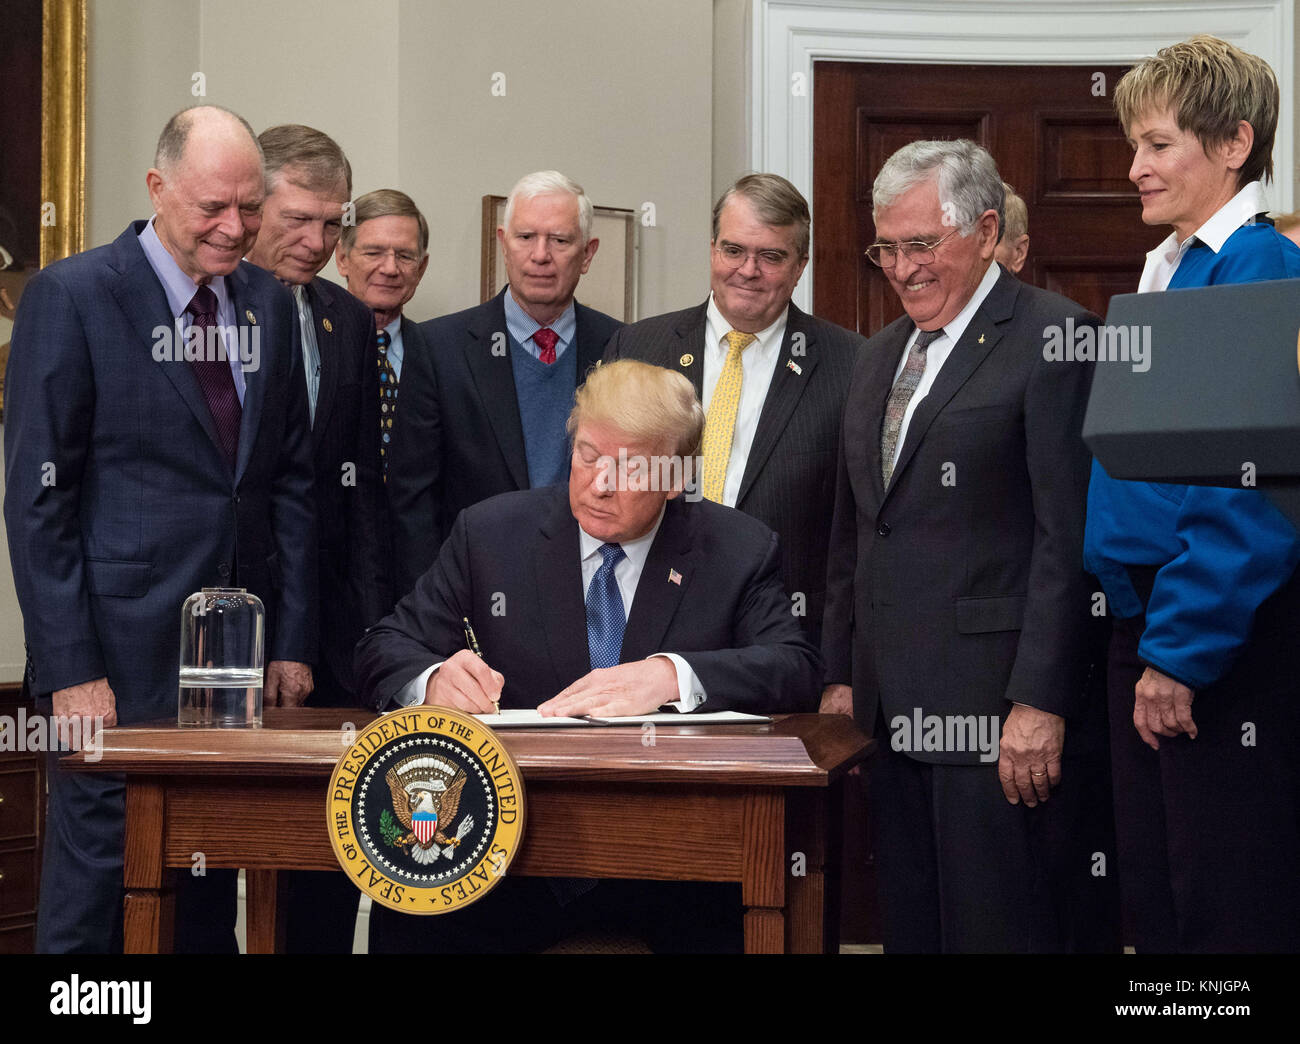 United States President Donald J. Trump signs the Presidential Space Directive. 11th Dec, 2017. 1, directing NASA to return to the moon, alongside members of the Senate, Congress, NASA, and commercial space companies in the Roosevelt room of the White House in Washington, Monday, December 11, 2017. Mandatory Credit: Aubrey Gemignani/NASA via CNP Credit: Aubrey Gemignani/CNP/ZUMA Wire/Alamy Live News Stock Photo